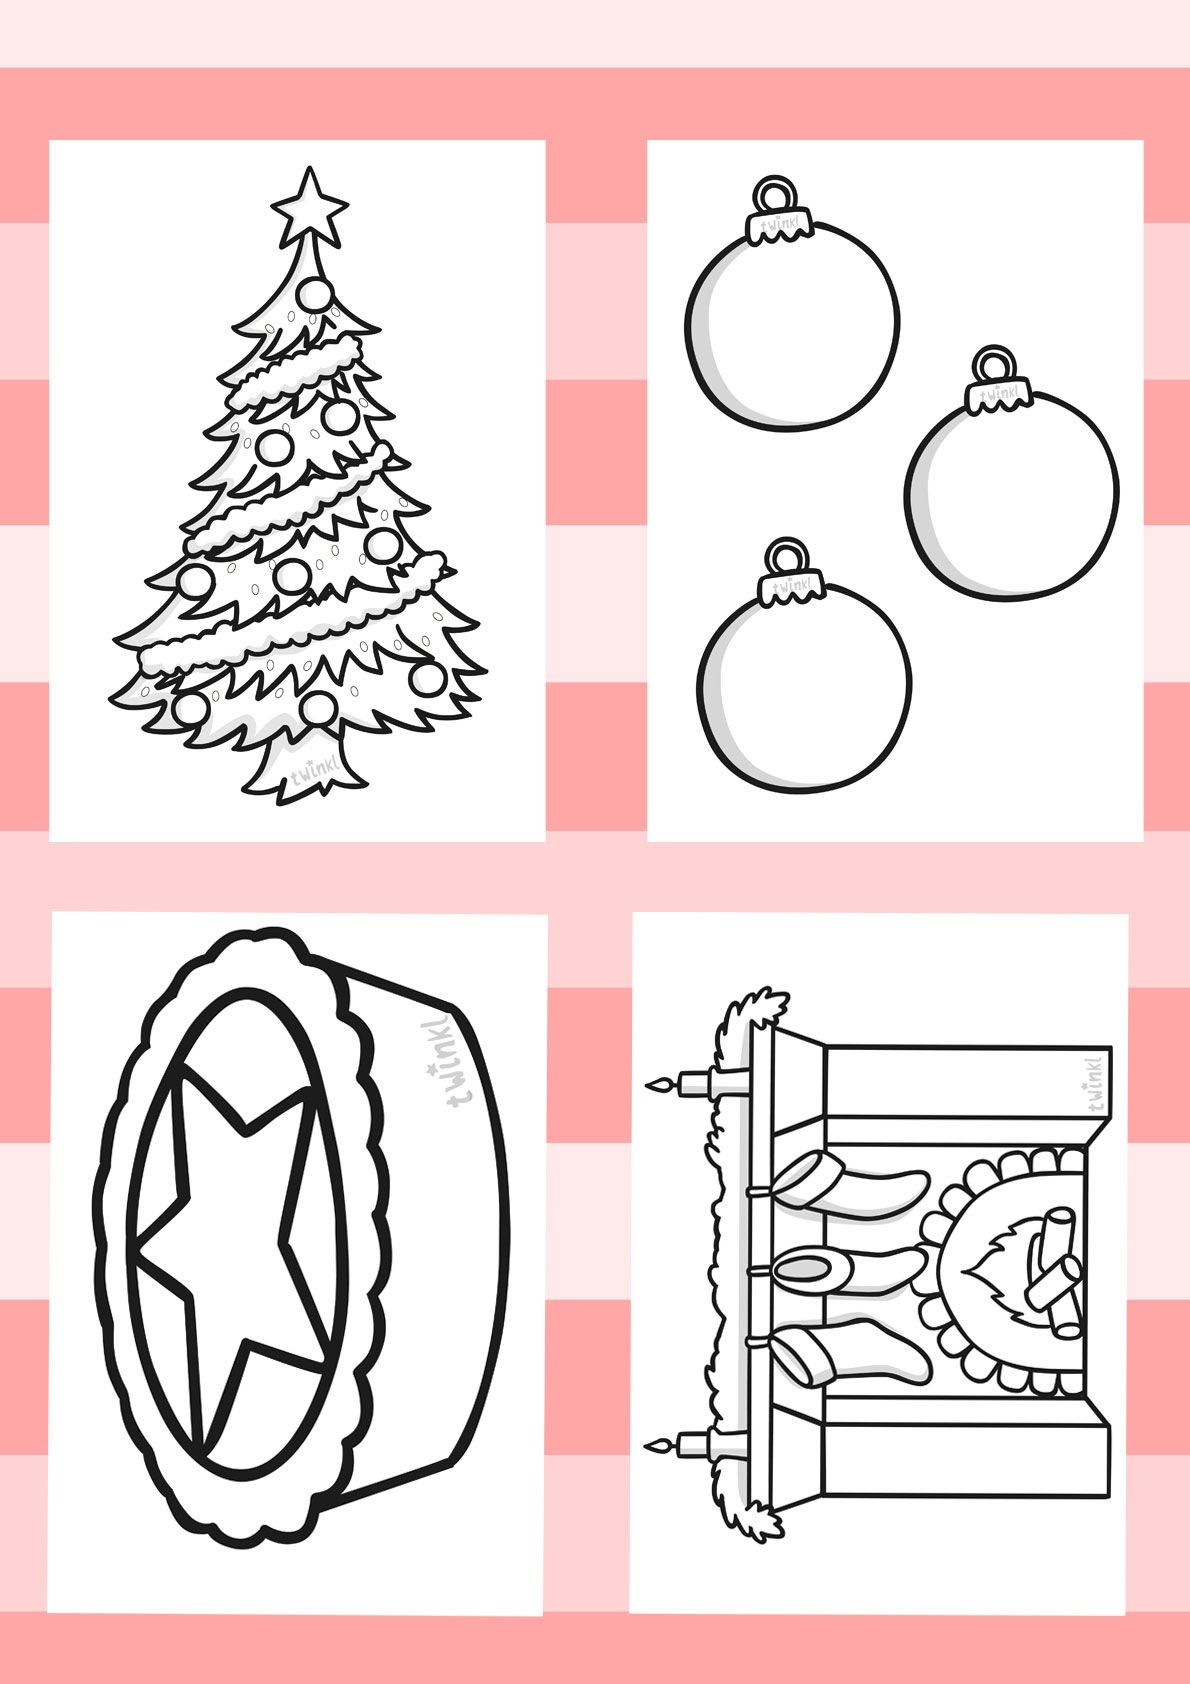 twinkl resources christmas colouring sheets printable resources for primary eyfs ks1 and. Black Bedroom Furniture Sets. Home Design Ideas